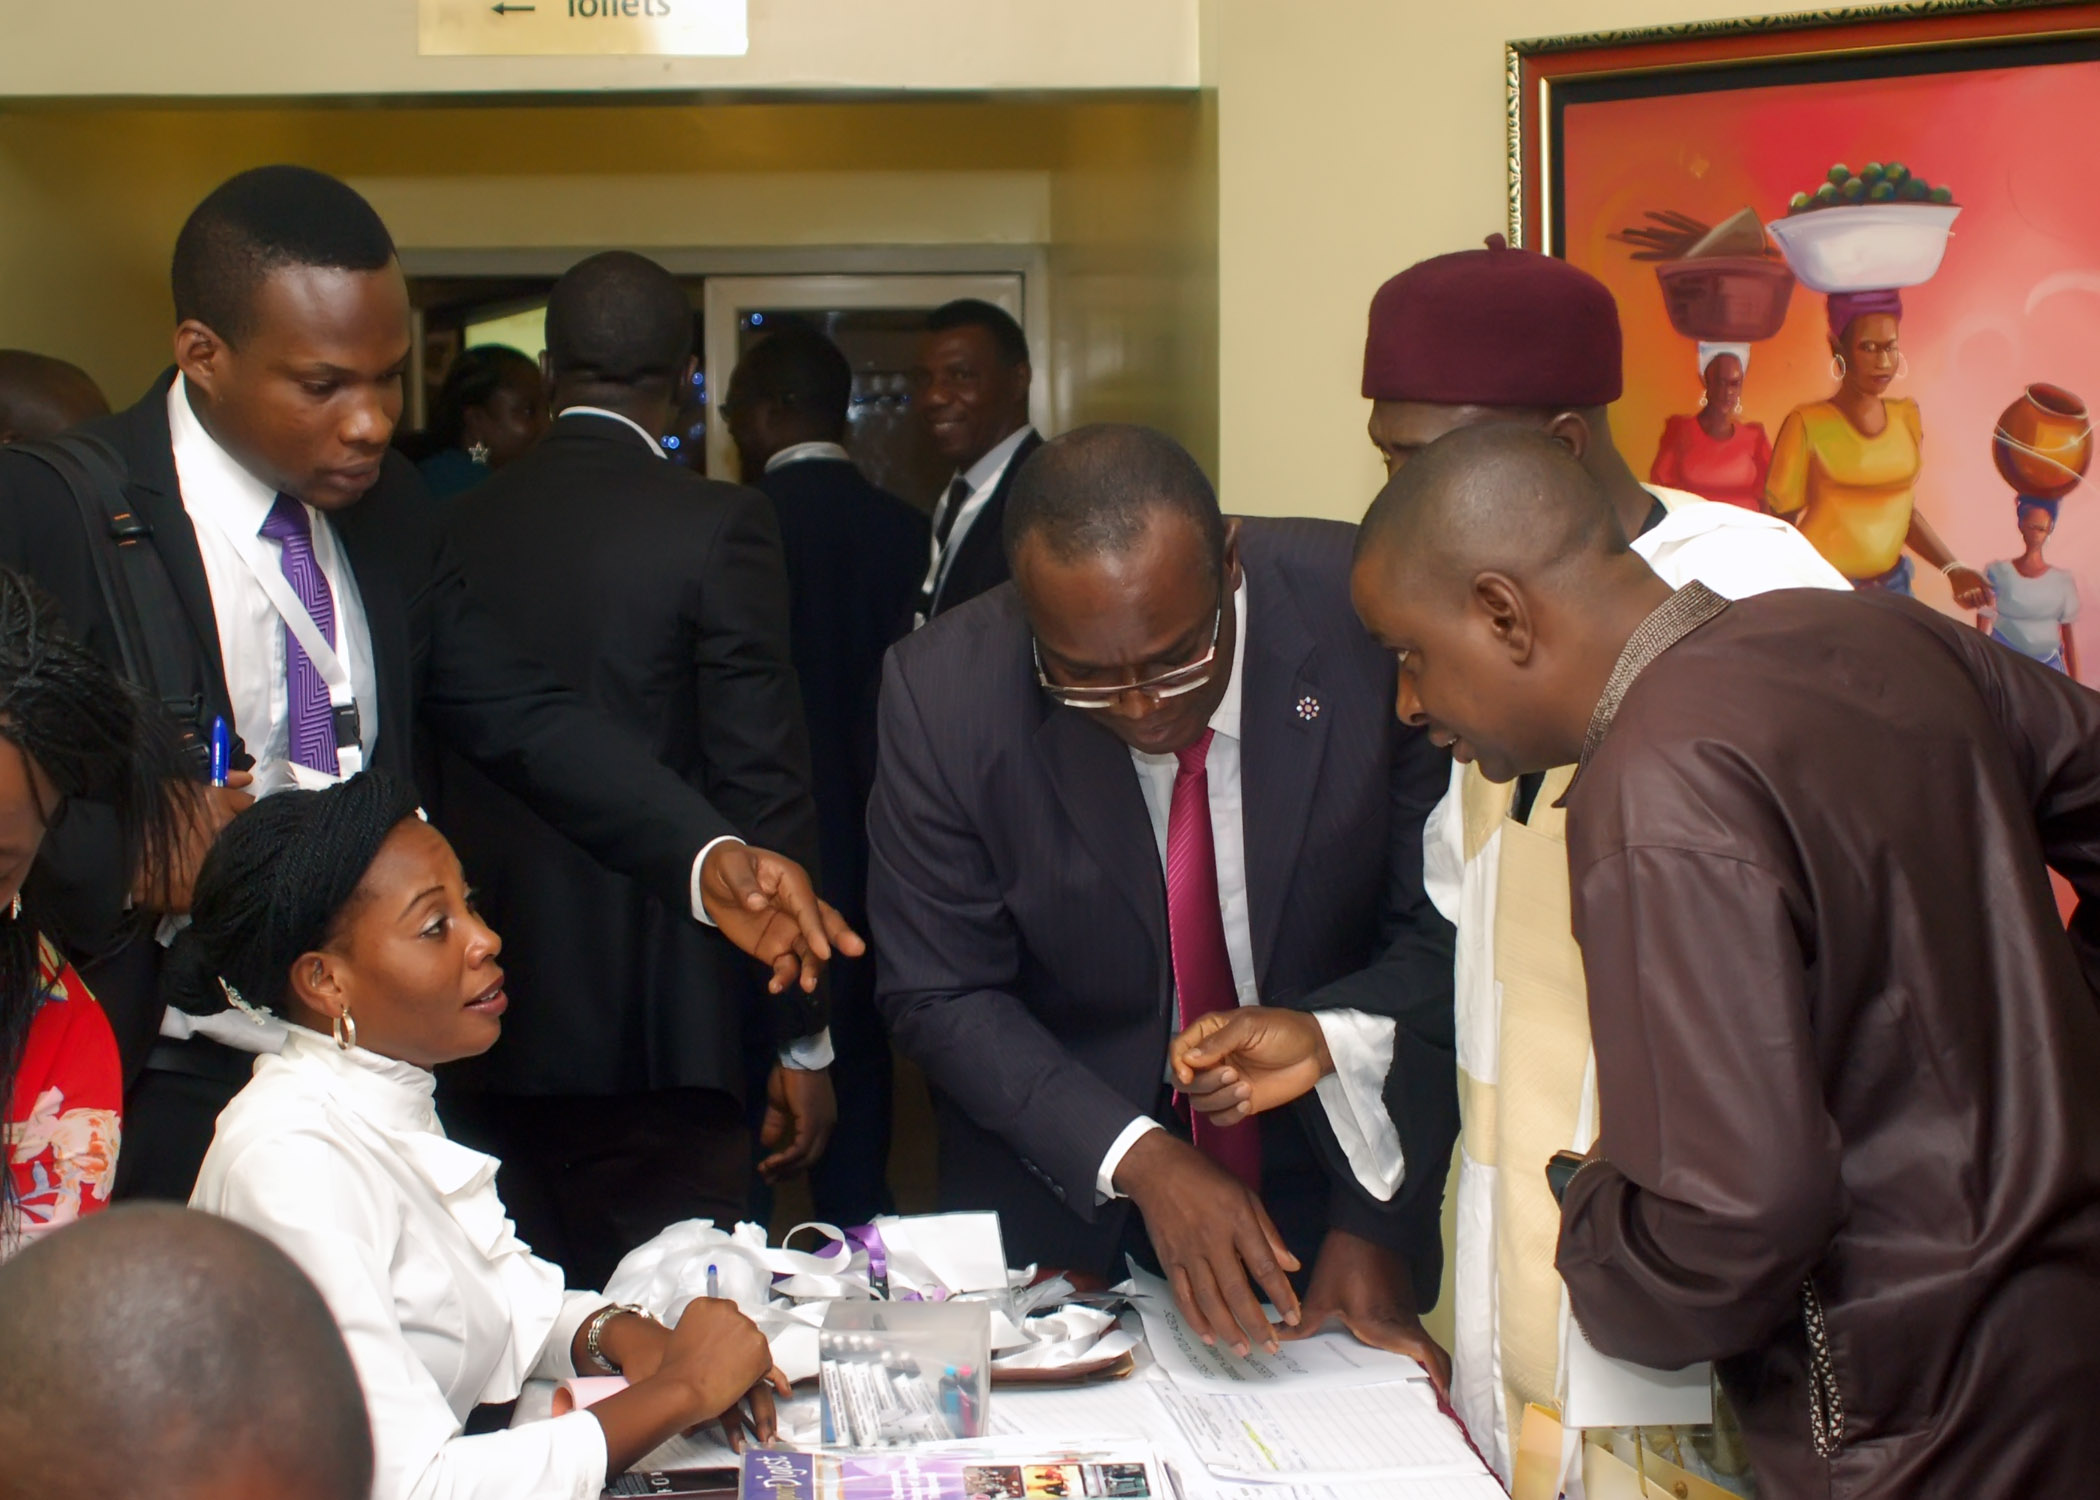 Participants registering before the conference